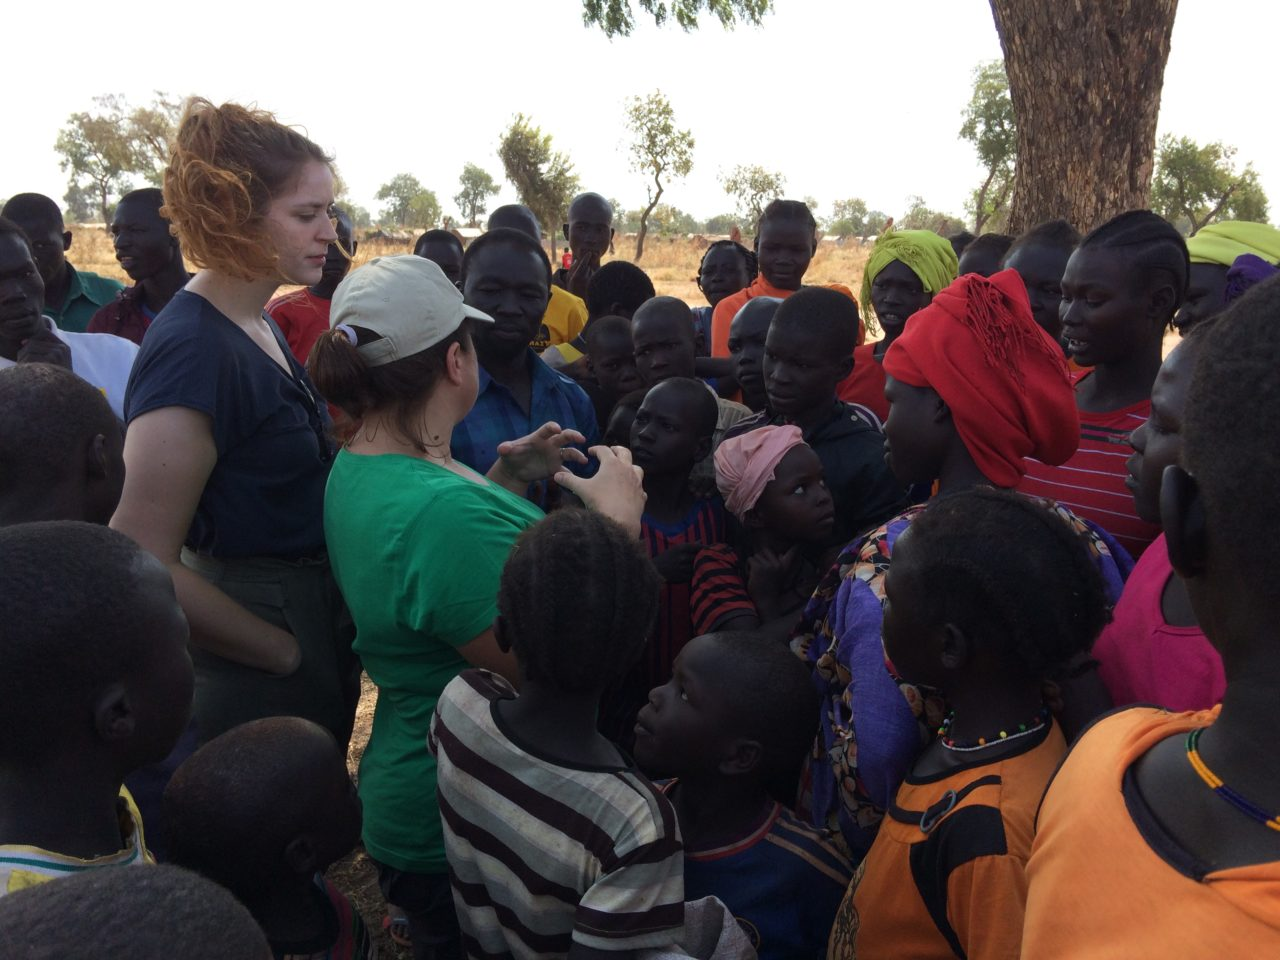 HMDT Blog: The forgotten victims of the Nuba Mountains – Sonja Miley